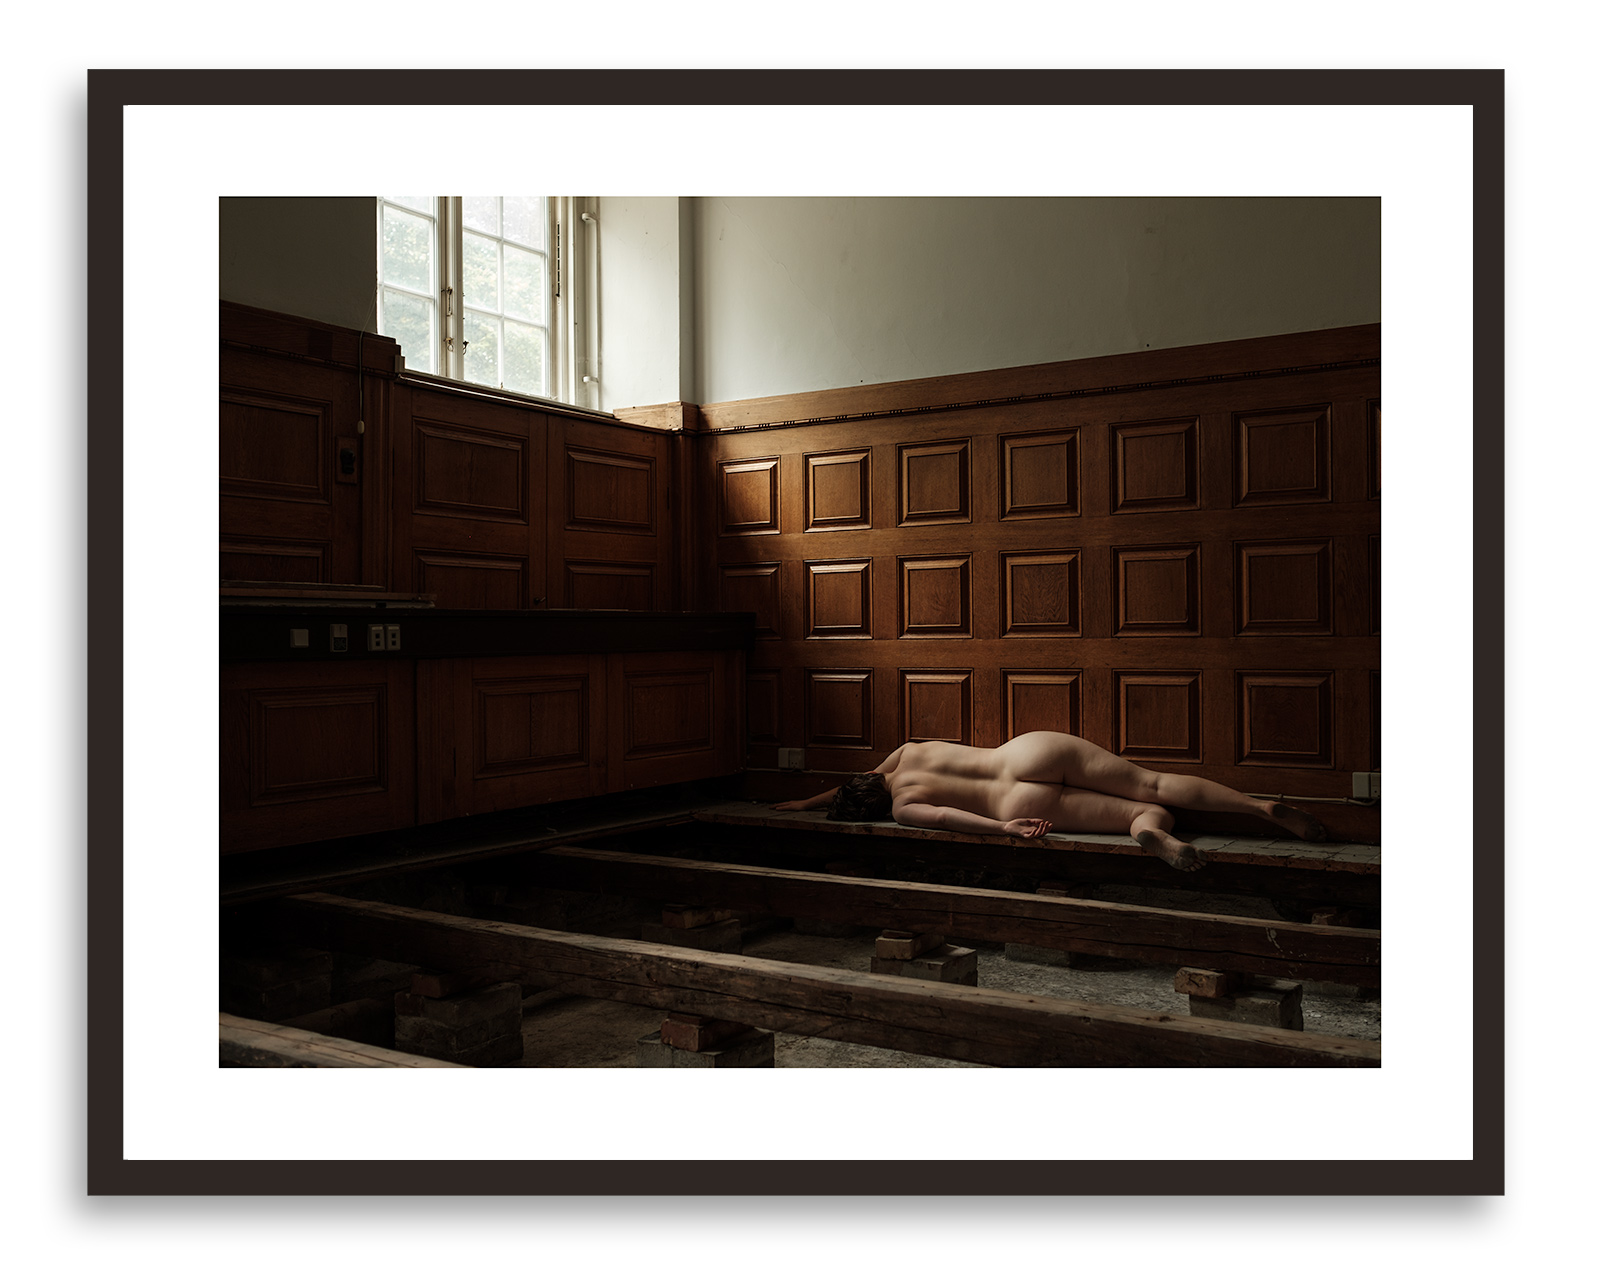 Big sleep nr. 4 - 62 x 78 cmPrint: Inkjet pigment on paper backmounted to glass.Frame: Solid smoked oak.Edition: 10 + 1 AP.